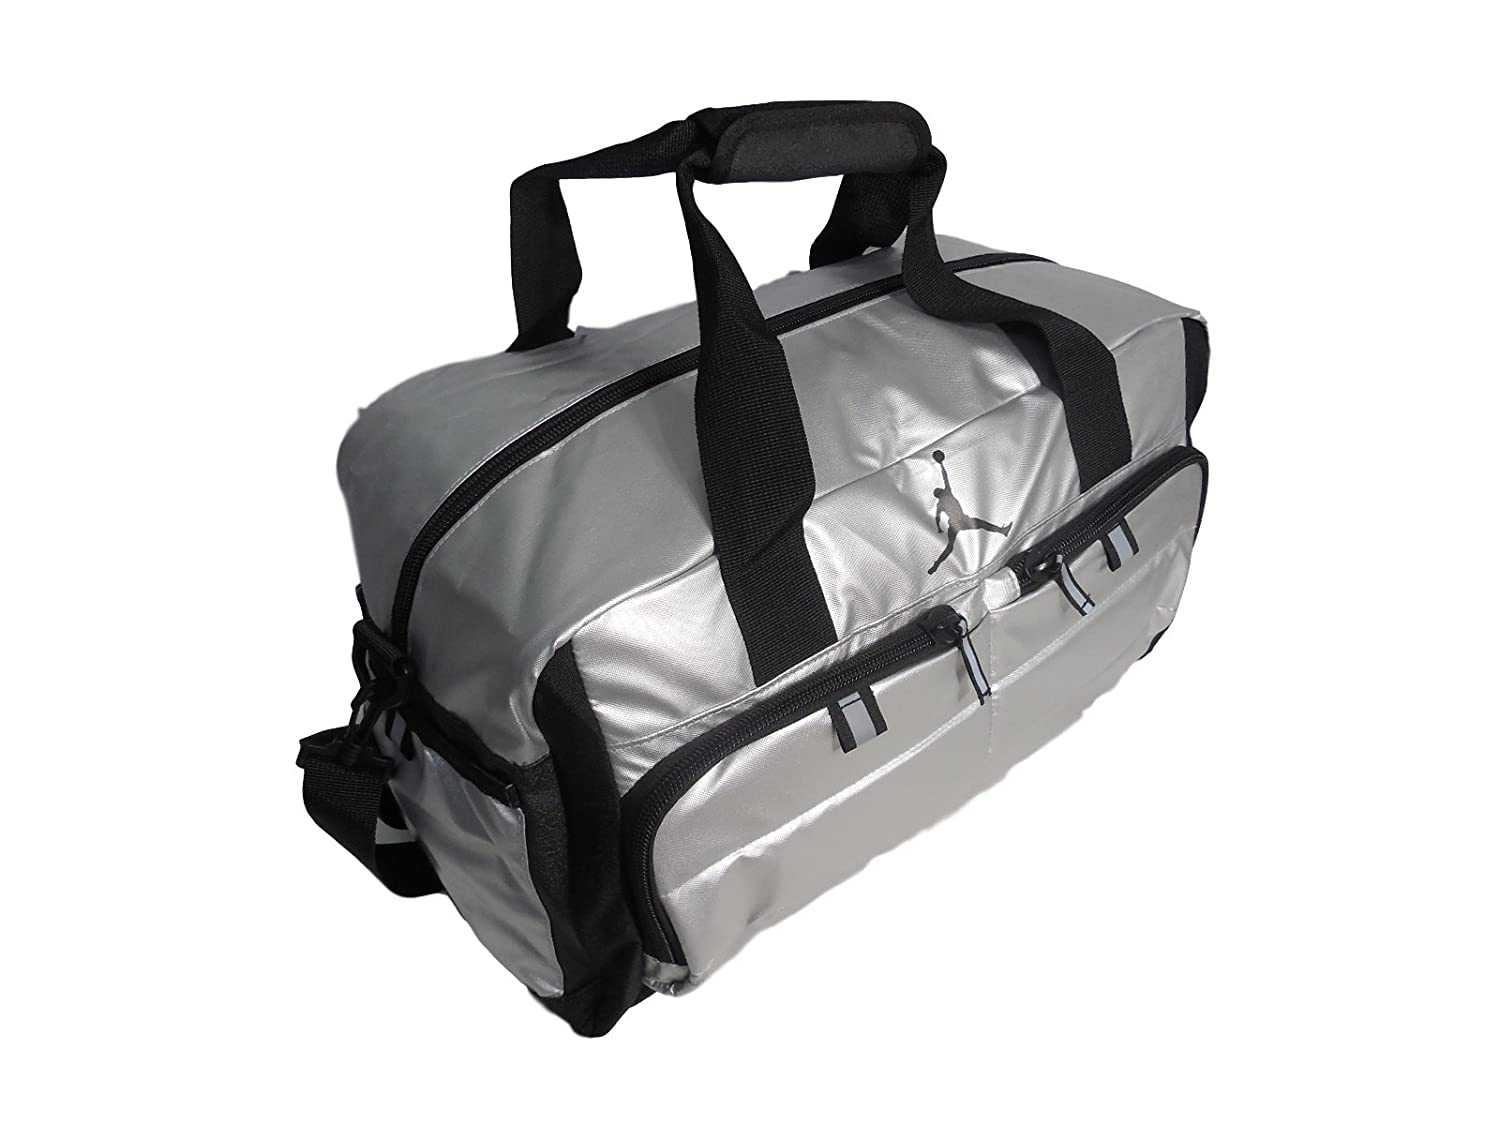 Amazon.com: Nike AIR JORDAN JUMPMAN All World Sport Duffel Bag -  Silver/Black (9A12639-250 ), O/S: Sports & Outdoors